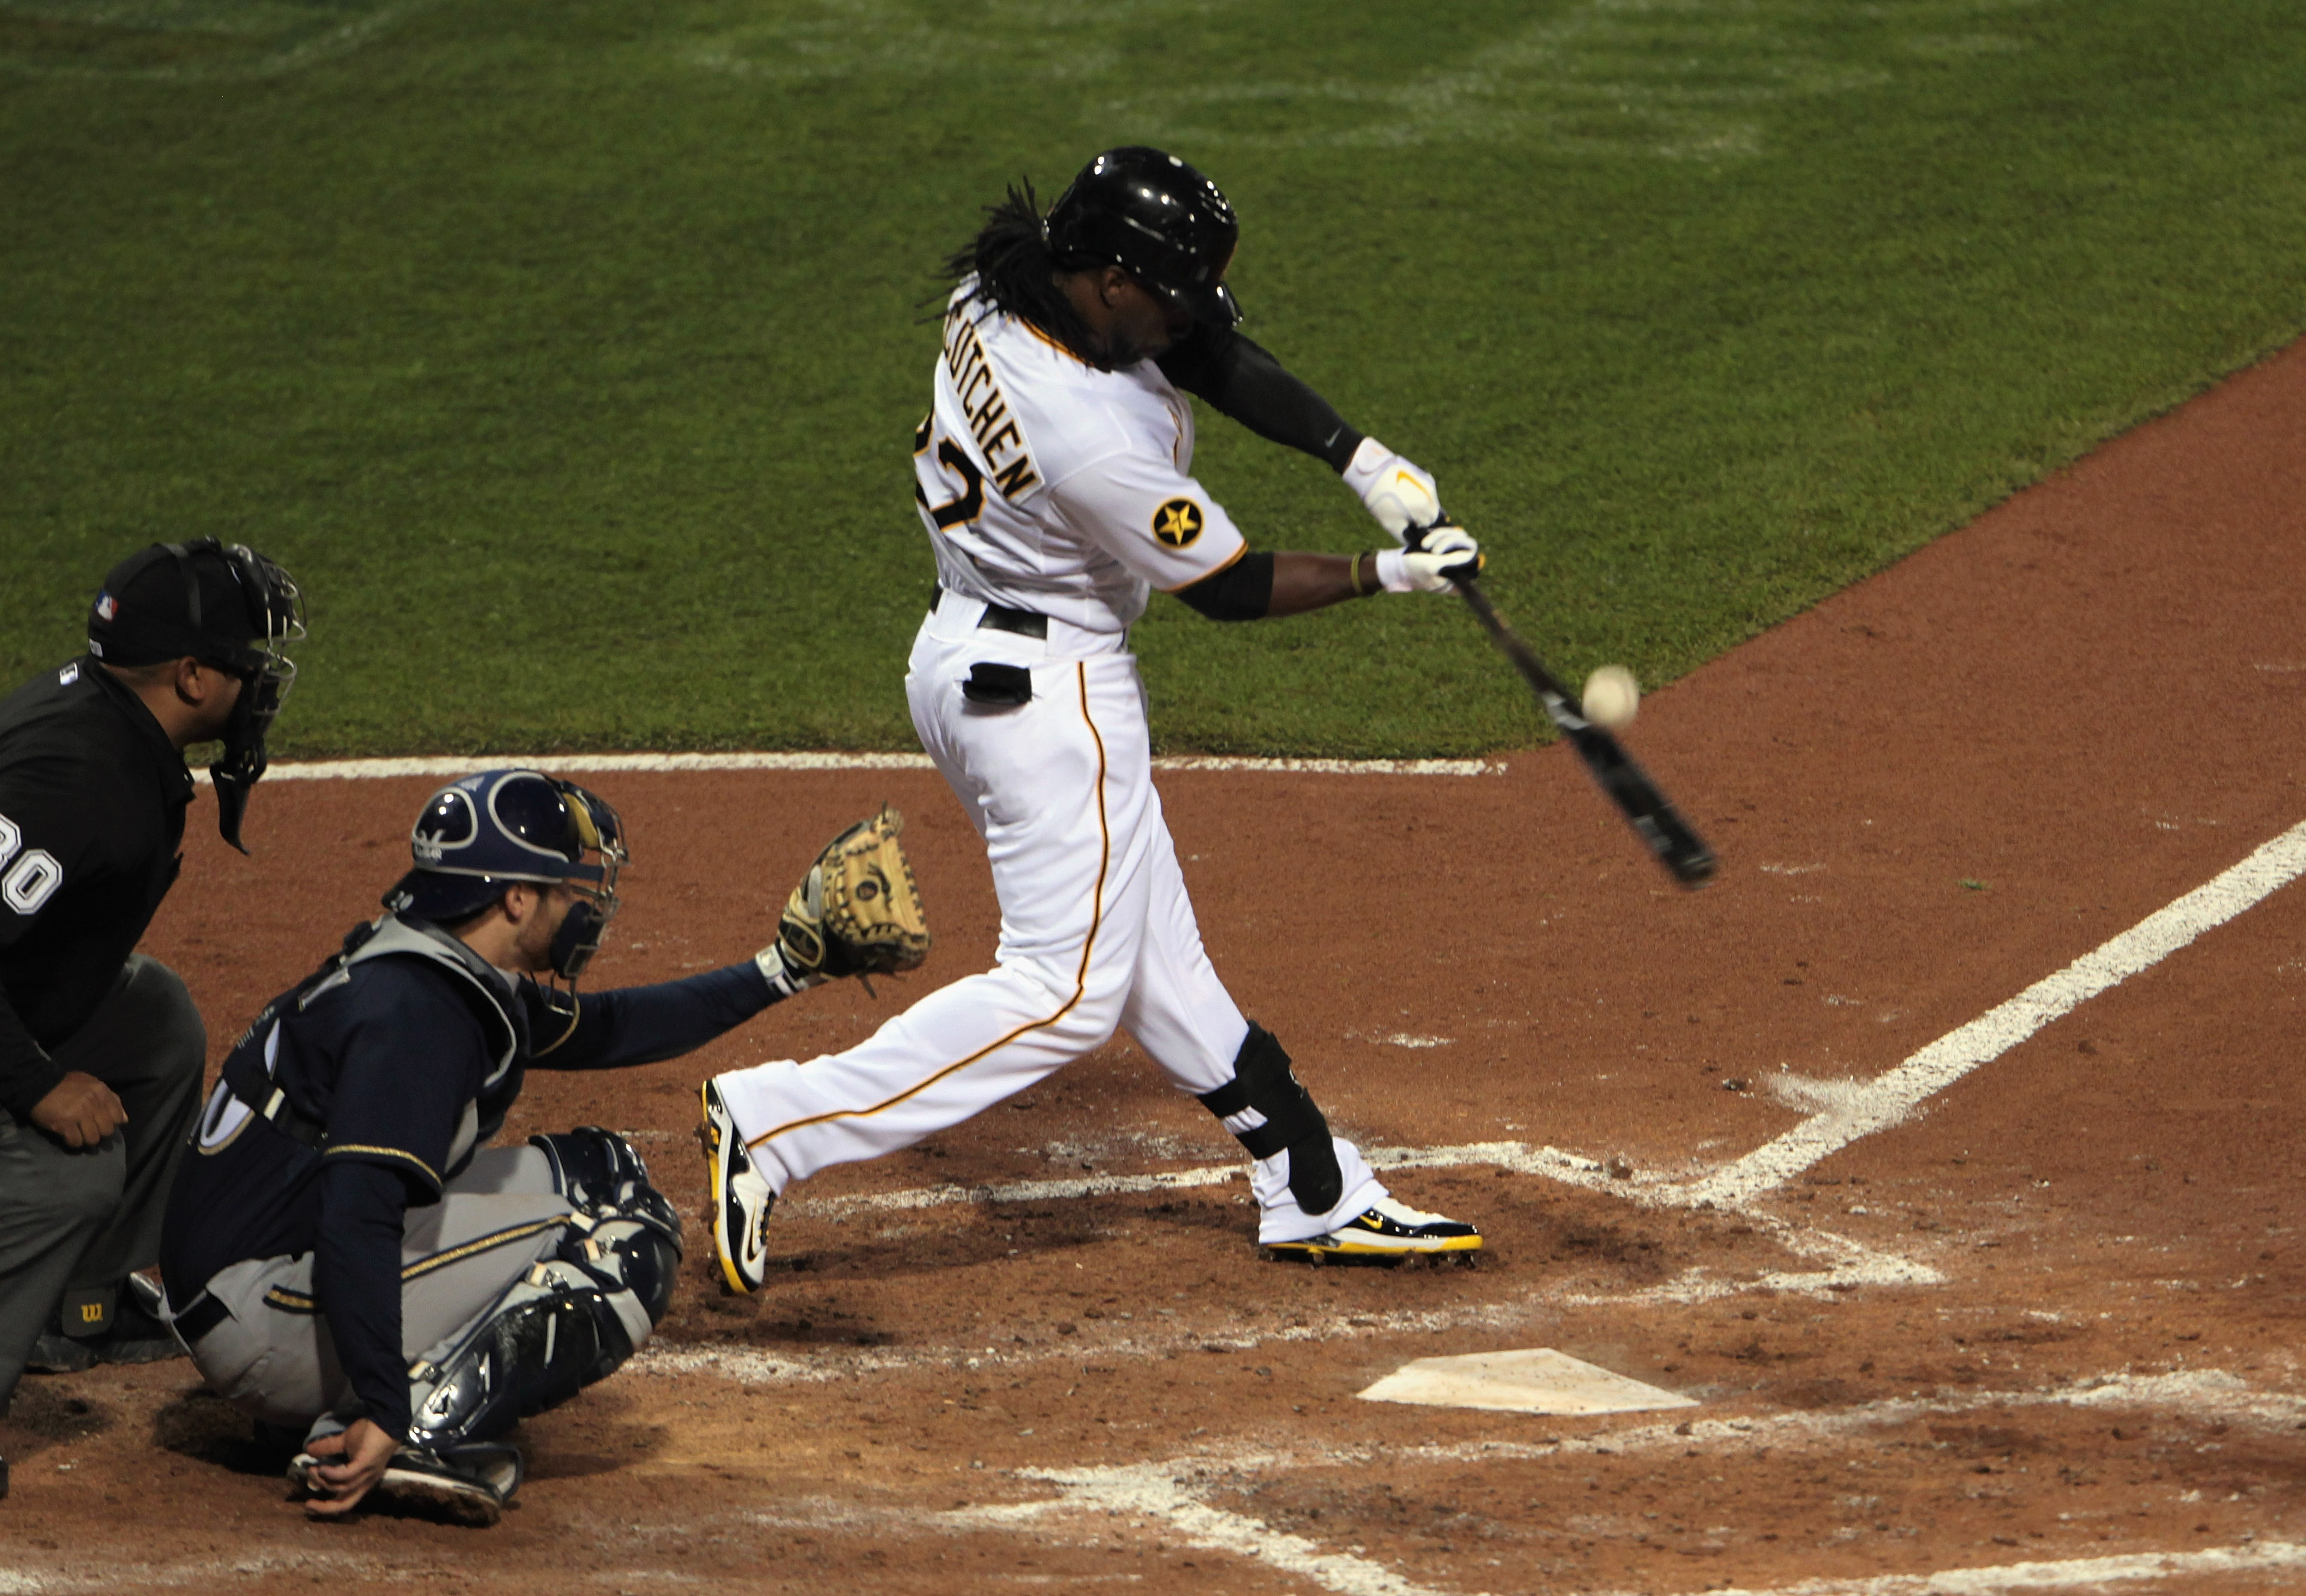 PITTSBURGH, PA - APRIL 14:  Andrew McCutchen #22 of the Pittsburgh Pirates takes a swing against the Milwaukee Brewers at PNC Park on April 14, 2011 in Pittsburgh, Pennsylvania.  (Photo by Scott Halleran/Getty Images)